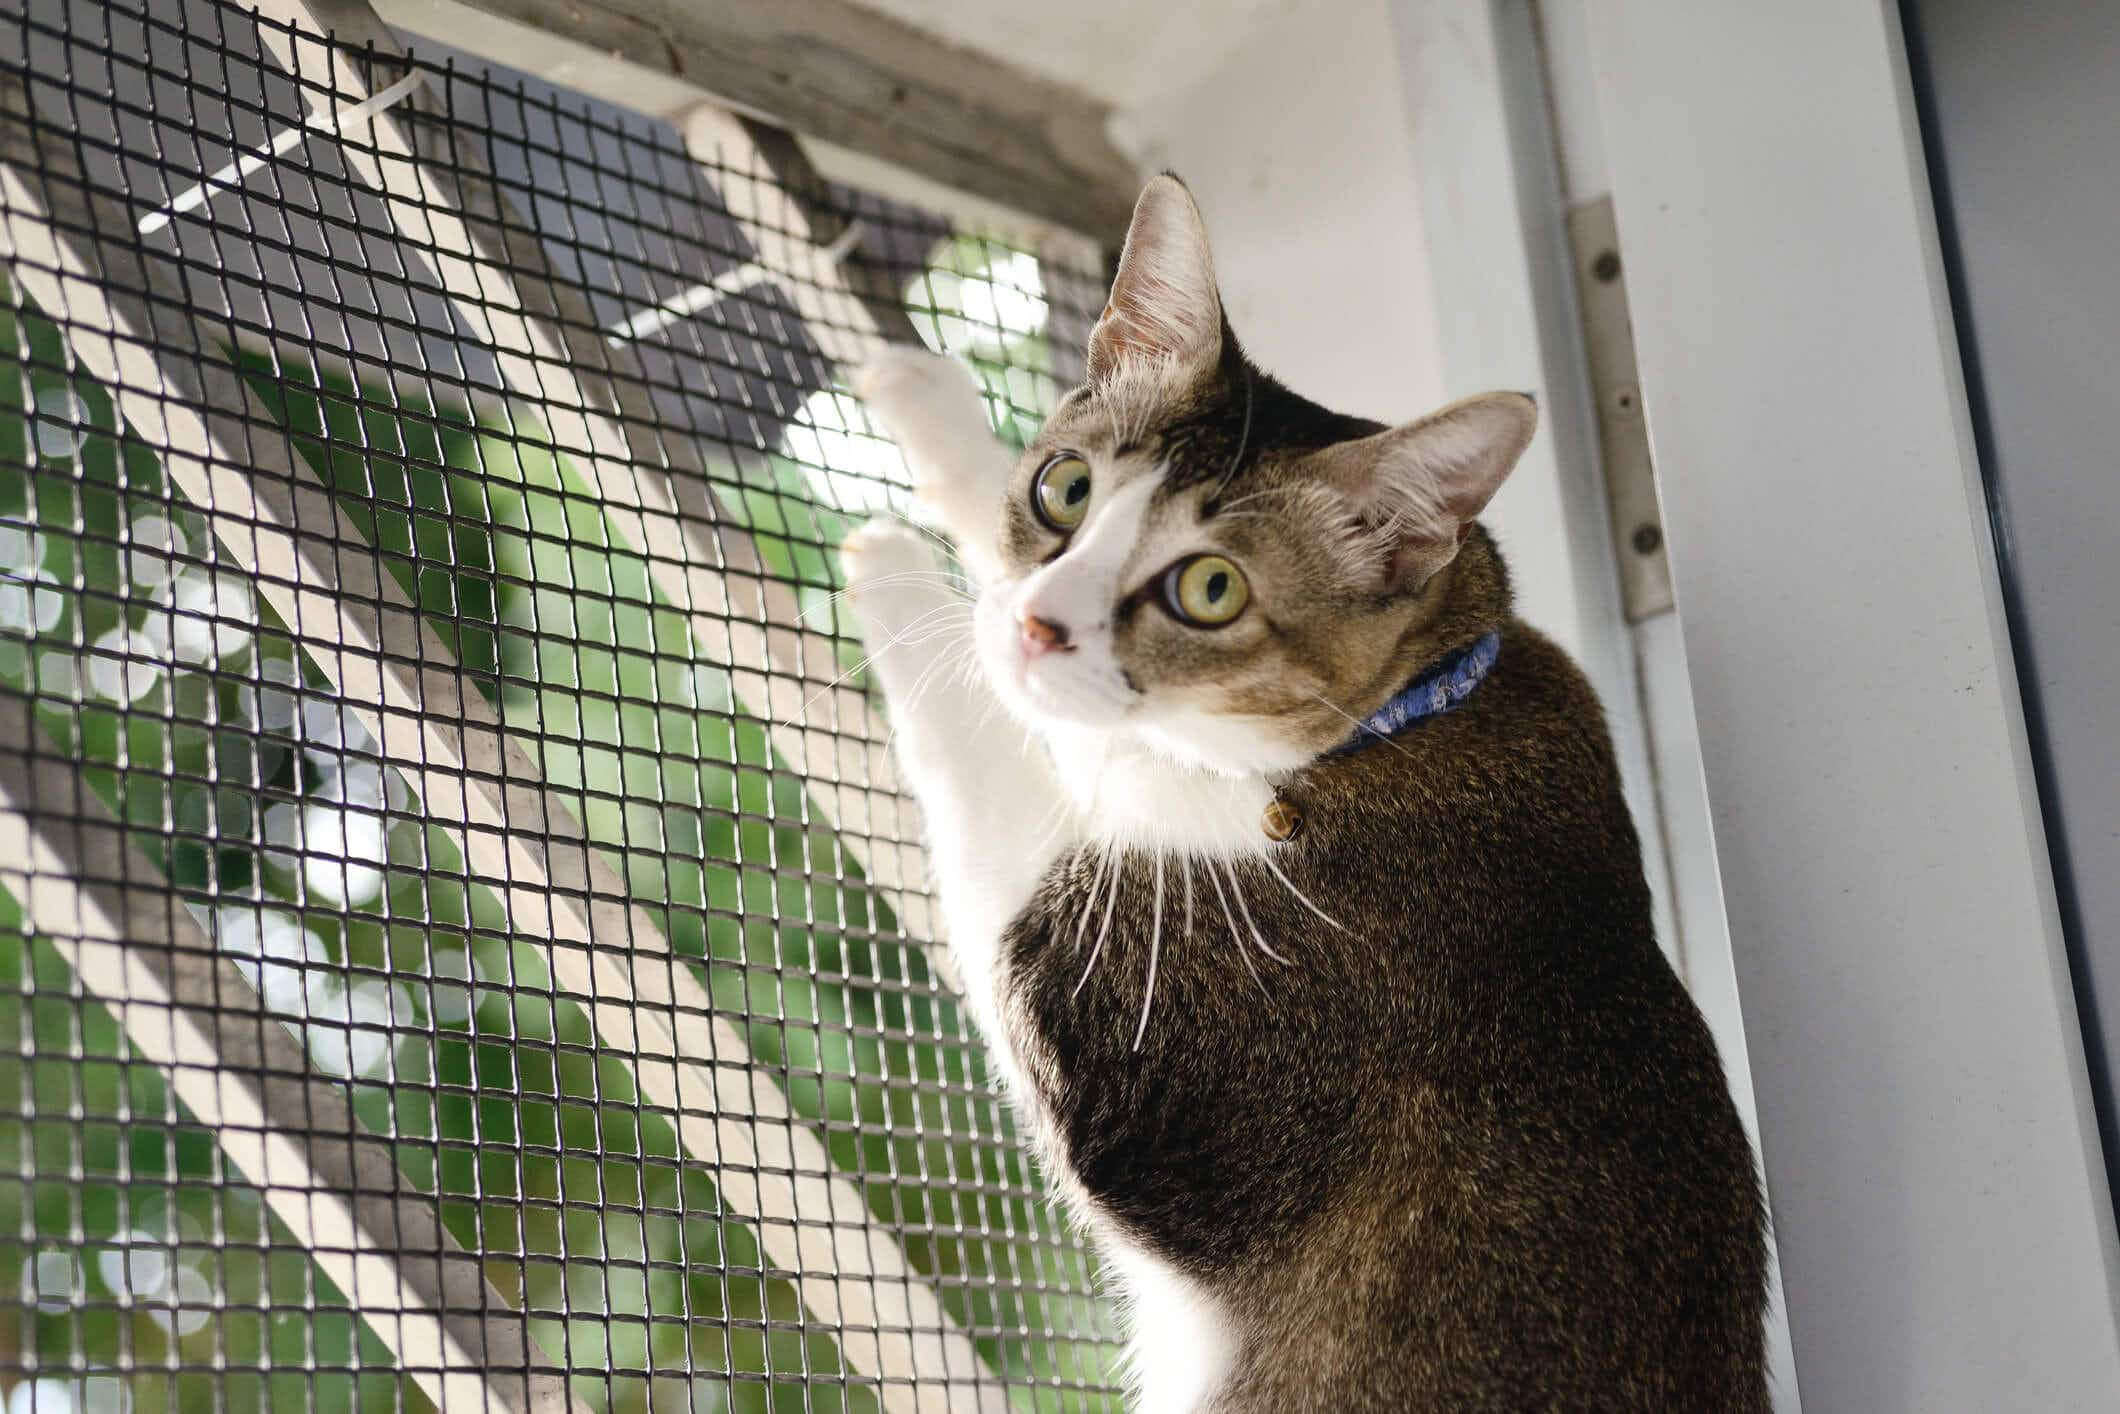 The week-long adventures of a missing cat in JFK airport